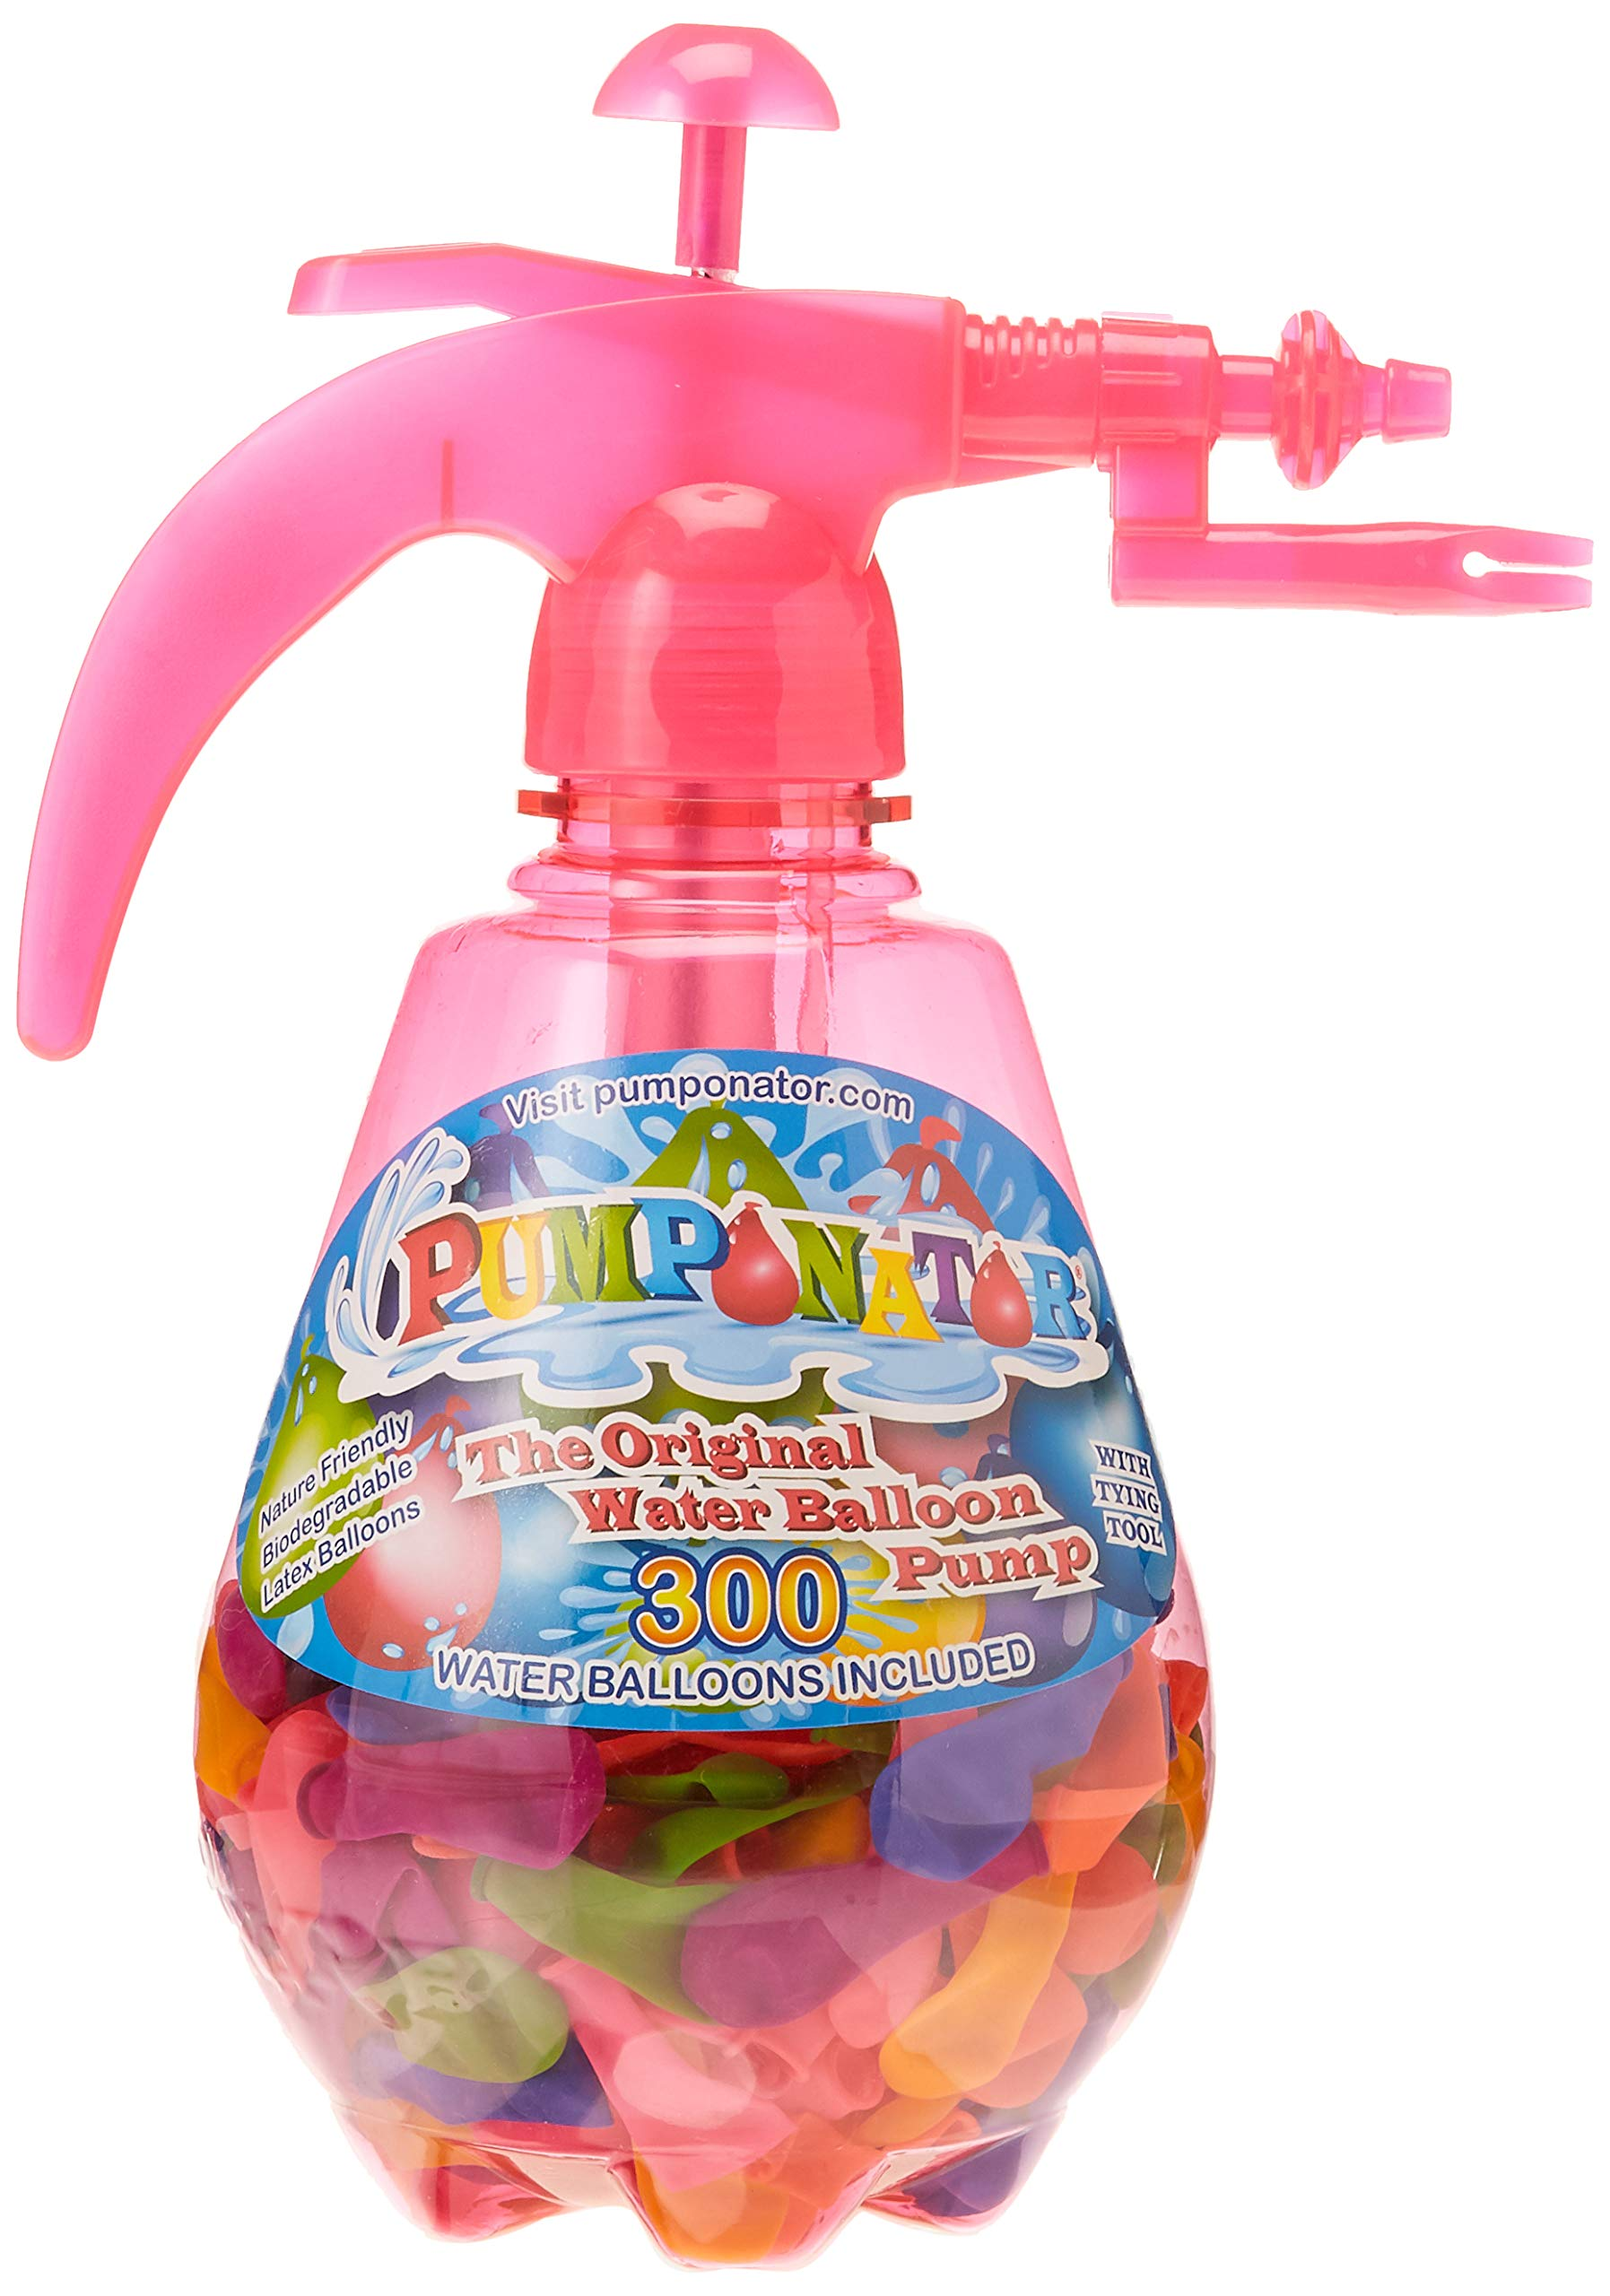 Pumponator Water Balloon Pump (Pink) and Tube o' Balloons Gift Bundle Set by Pumponator (Image #1)